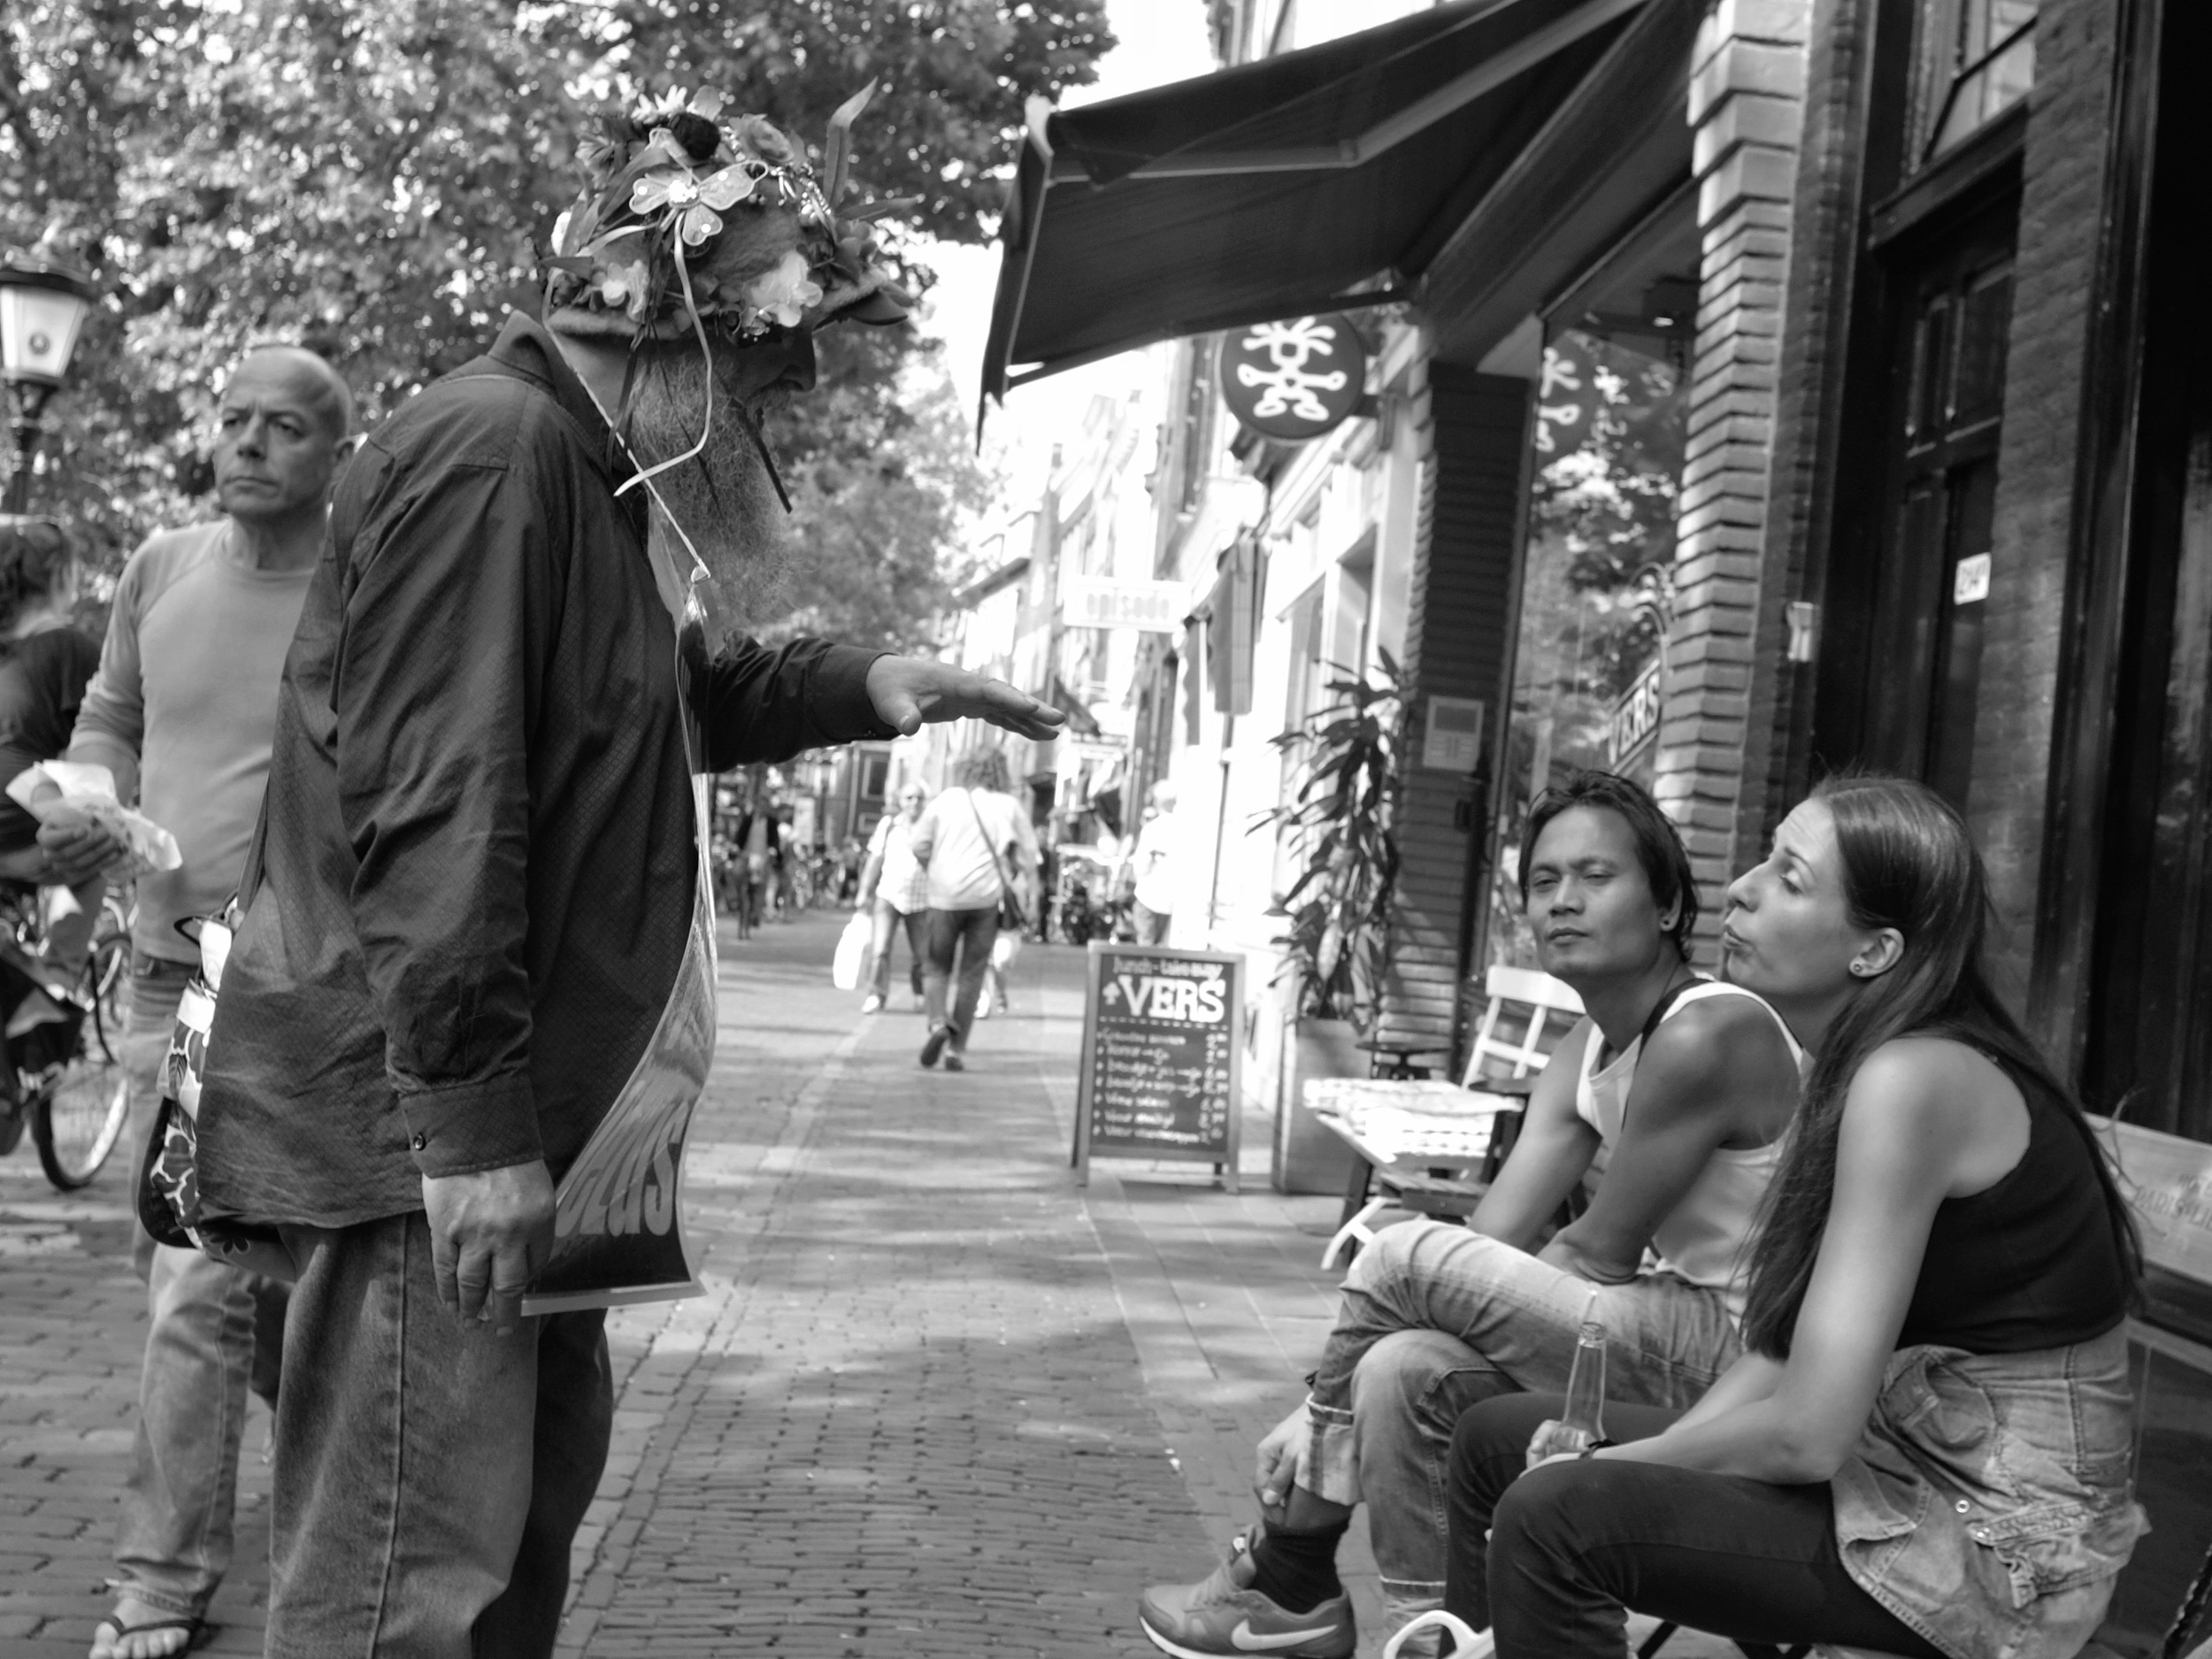 People talking in Utrecht - Fuji X-Pro1, Man walking with umbrella in Nantes - Fuji X-Pro1 with Minolta Rokkor MC 24mm F2.8 lens